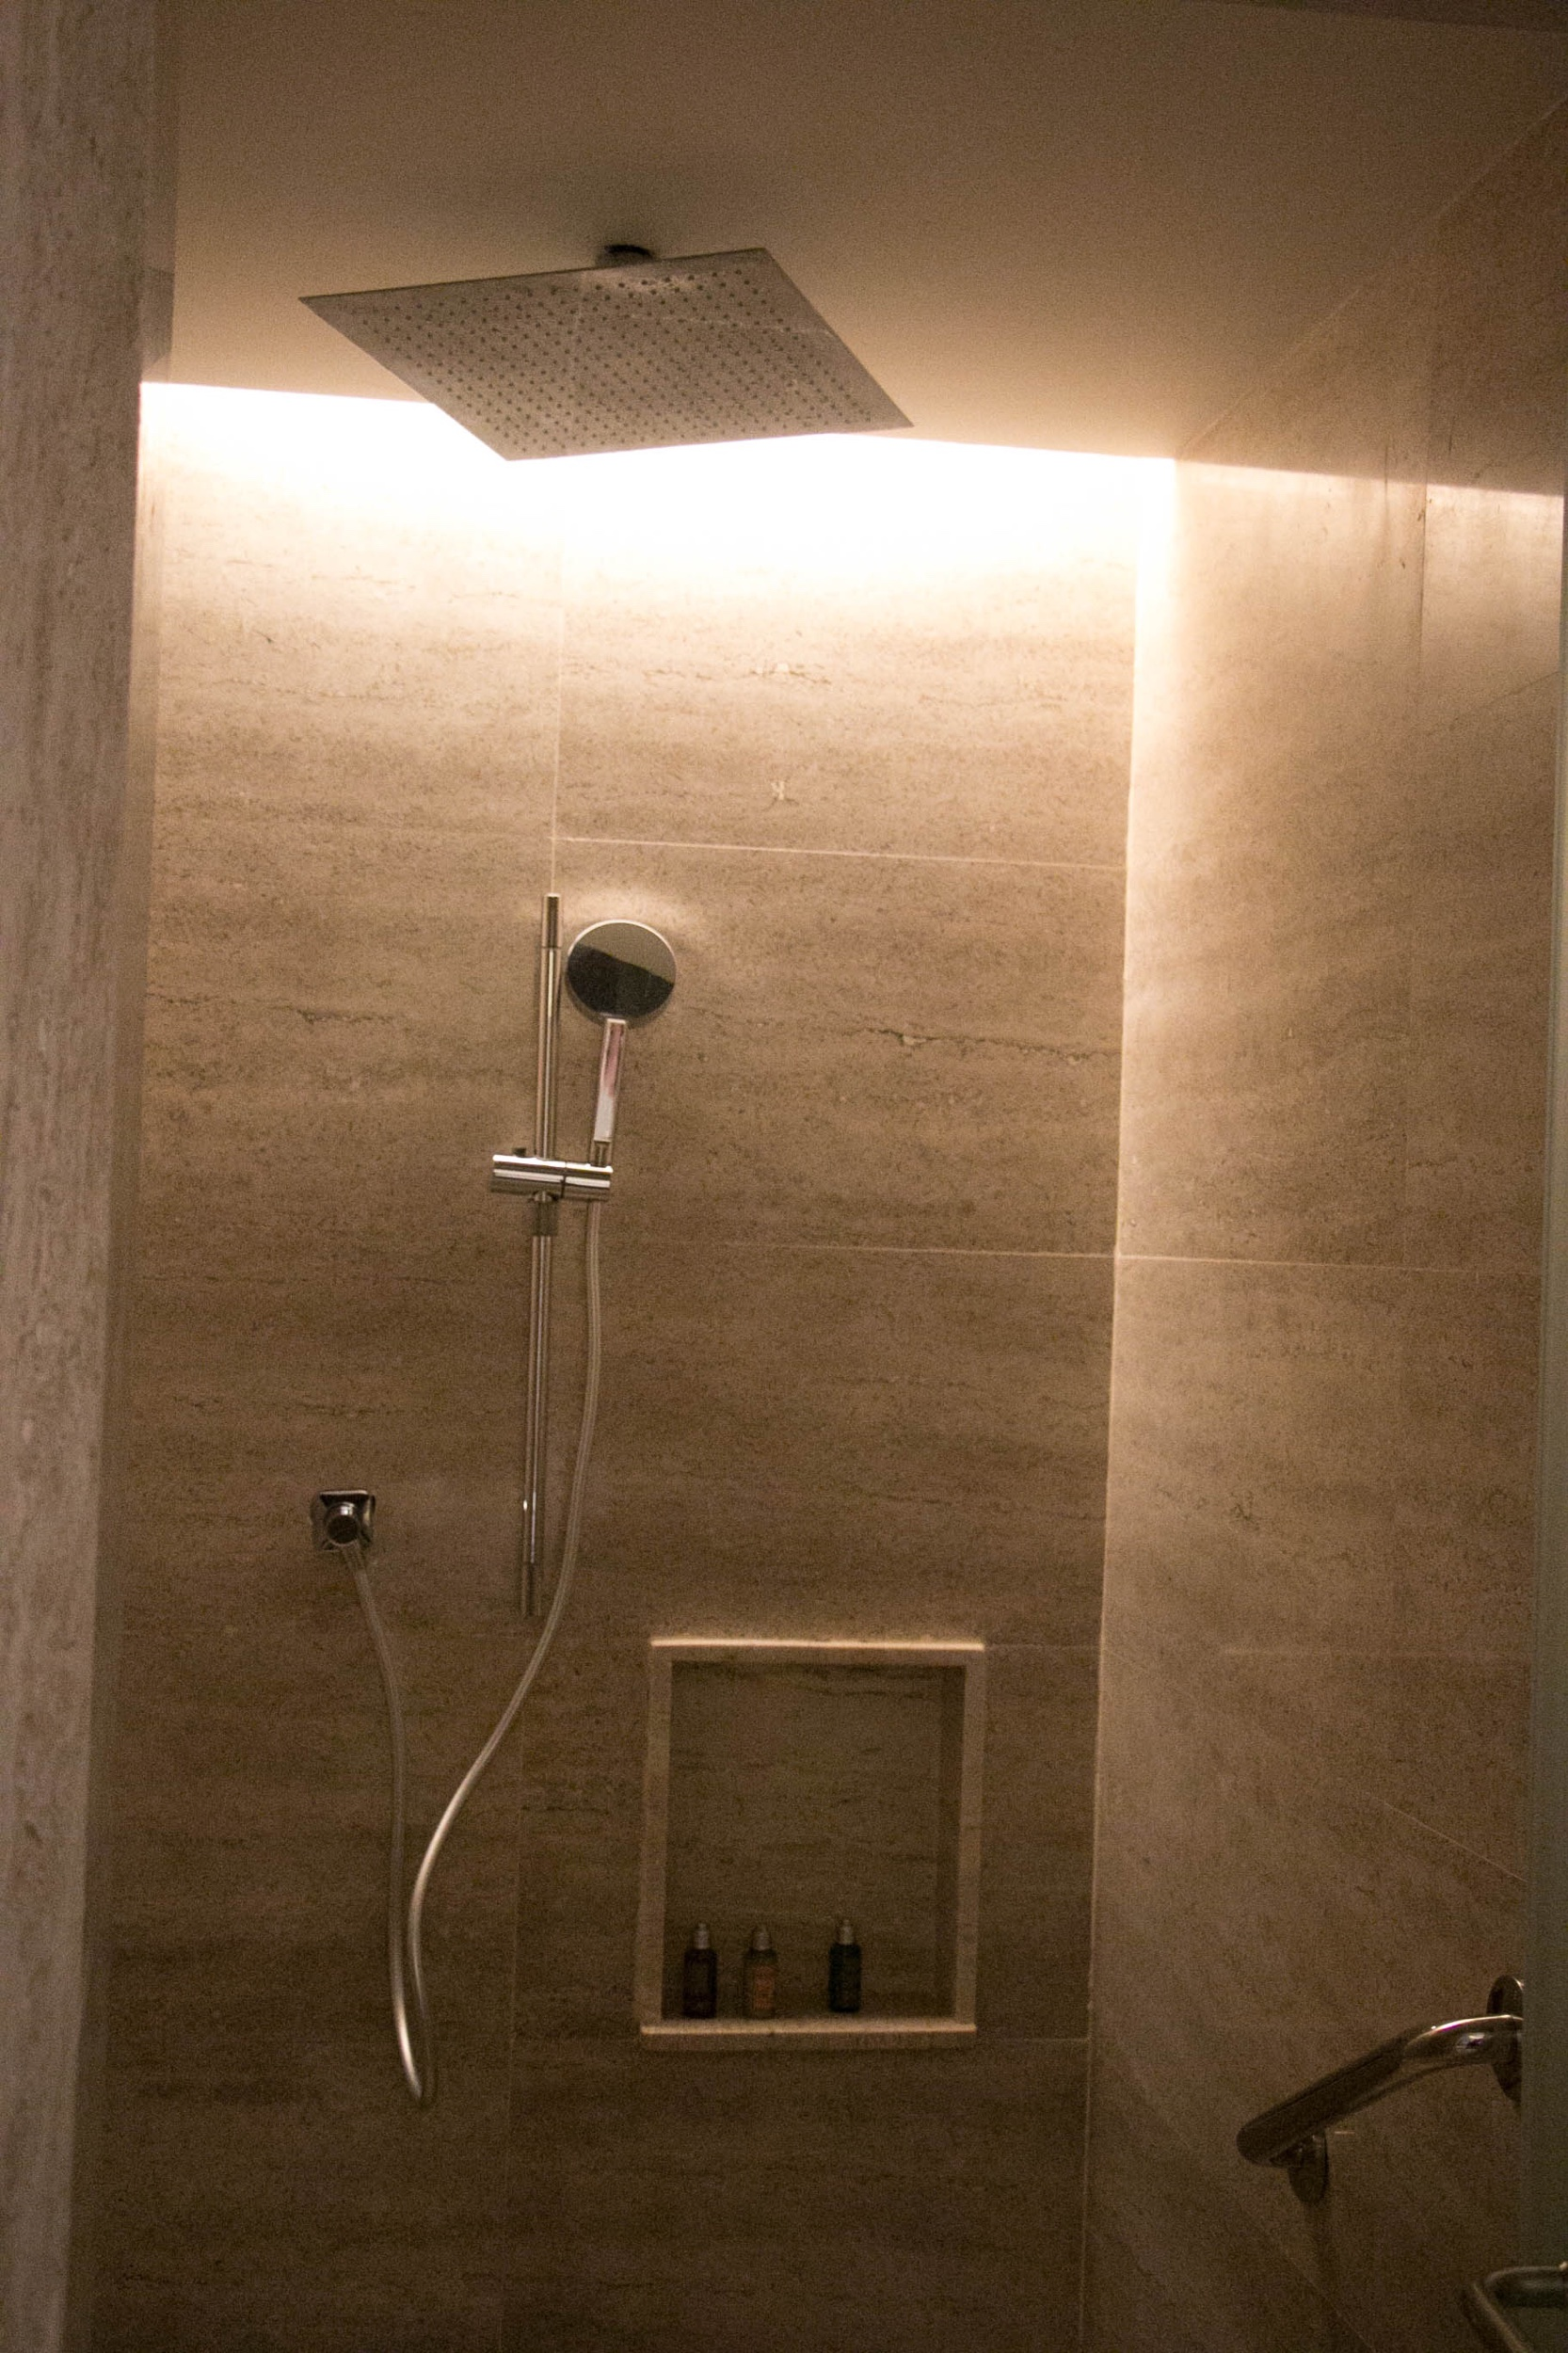 Our Shower with the ran drop faucet